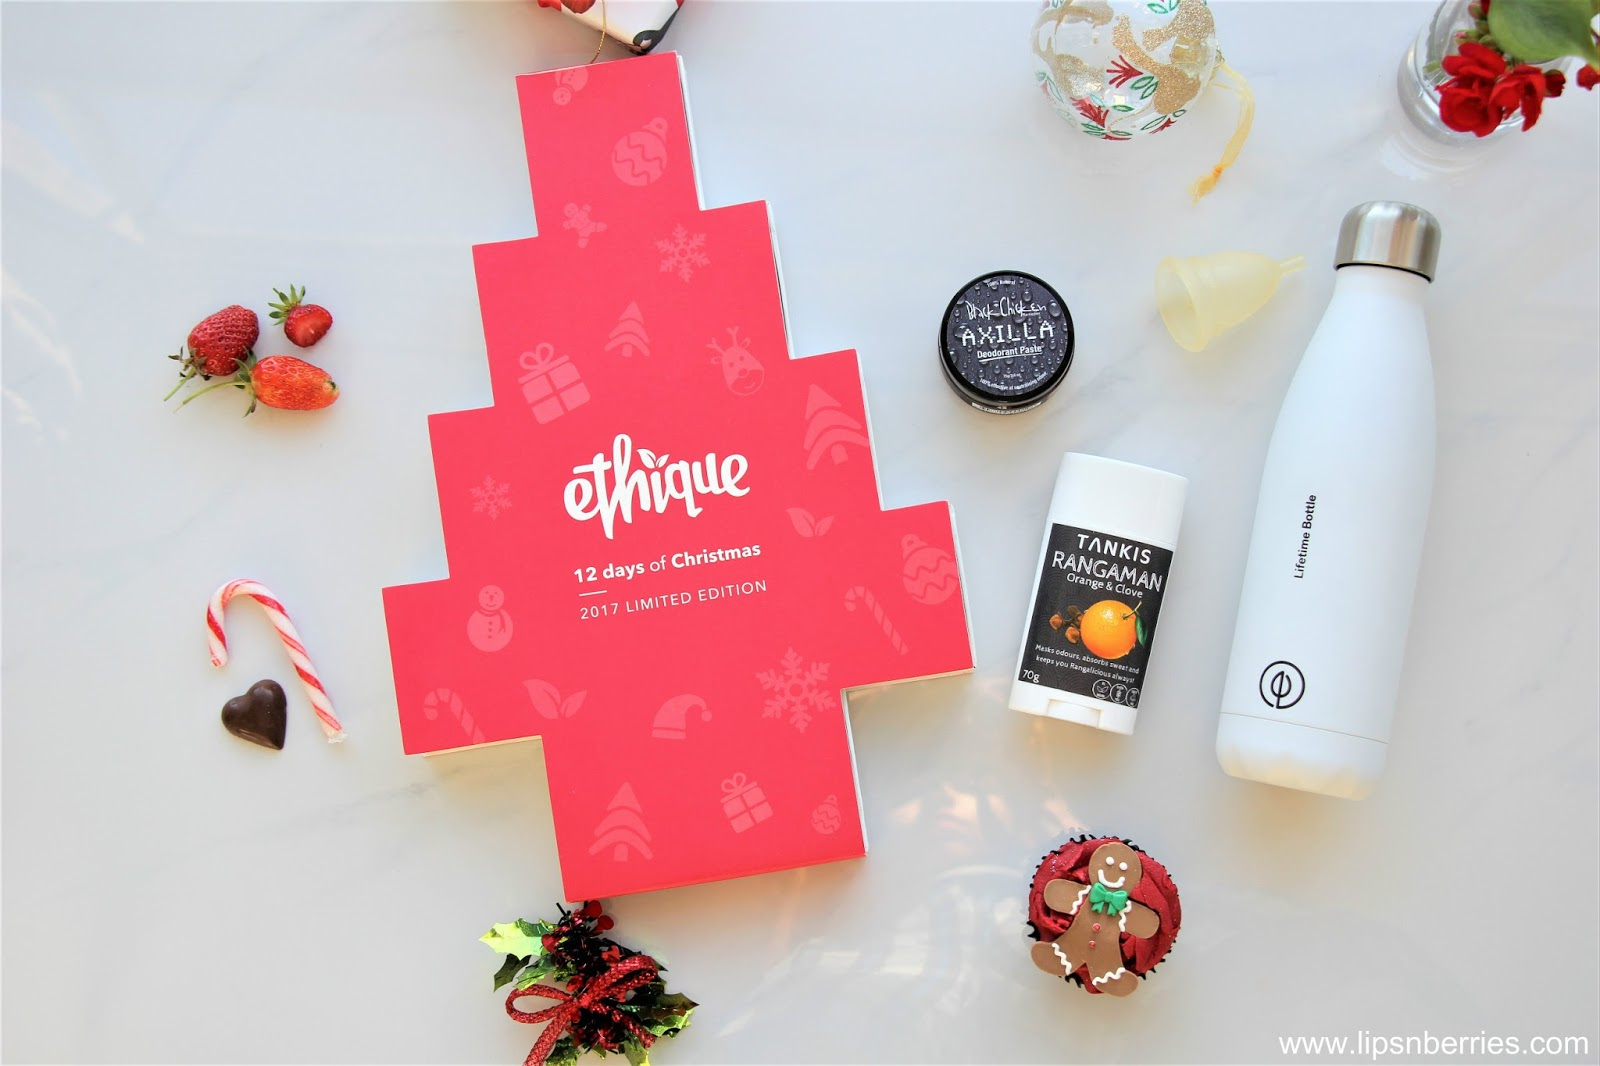 1/5 Christmas Gift Guide- Make the Switch | LIPS n BERRIES!